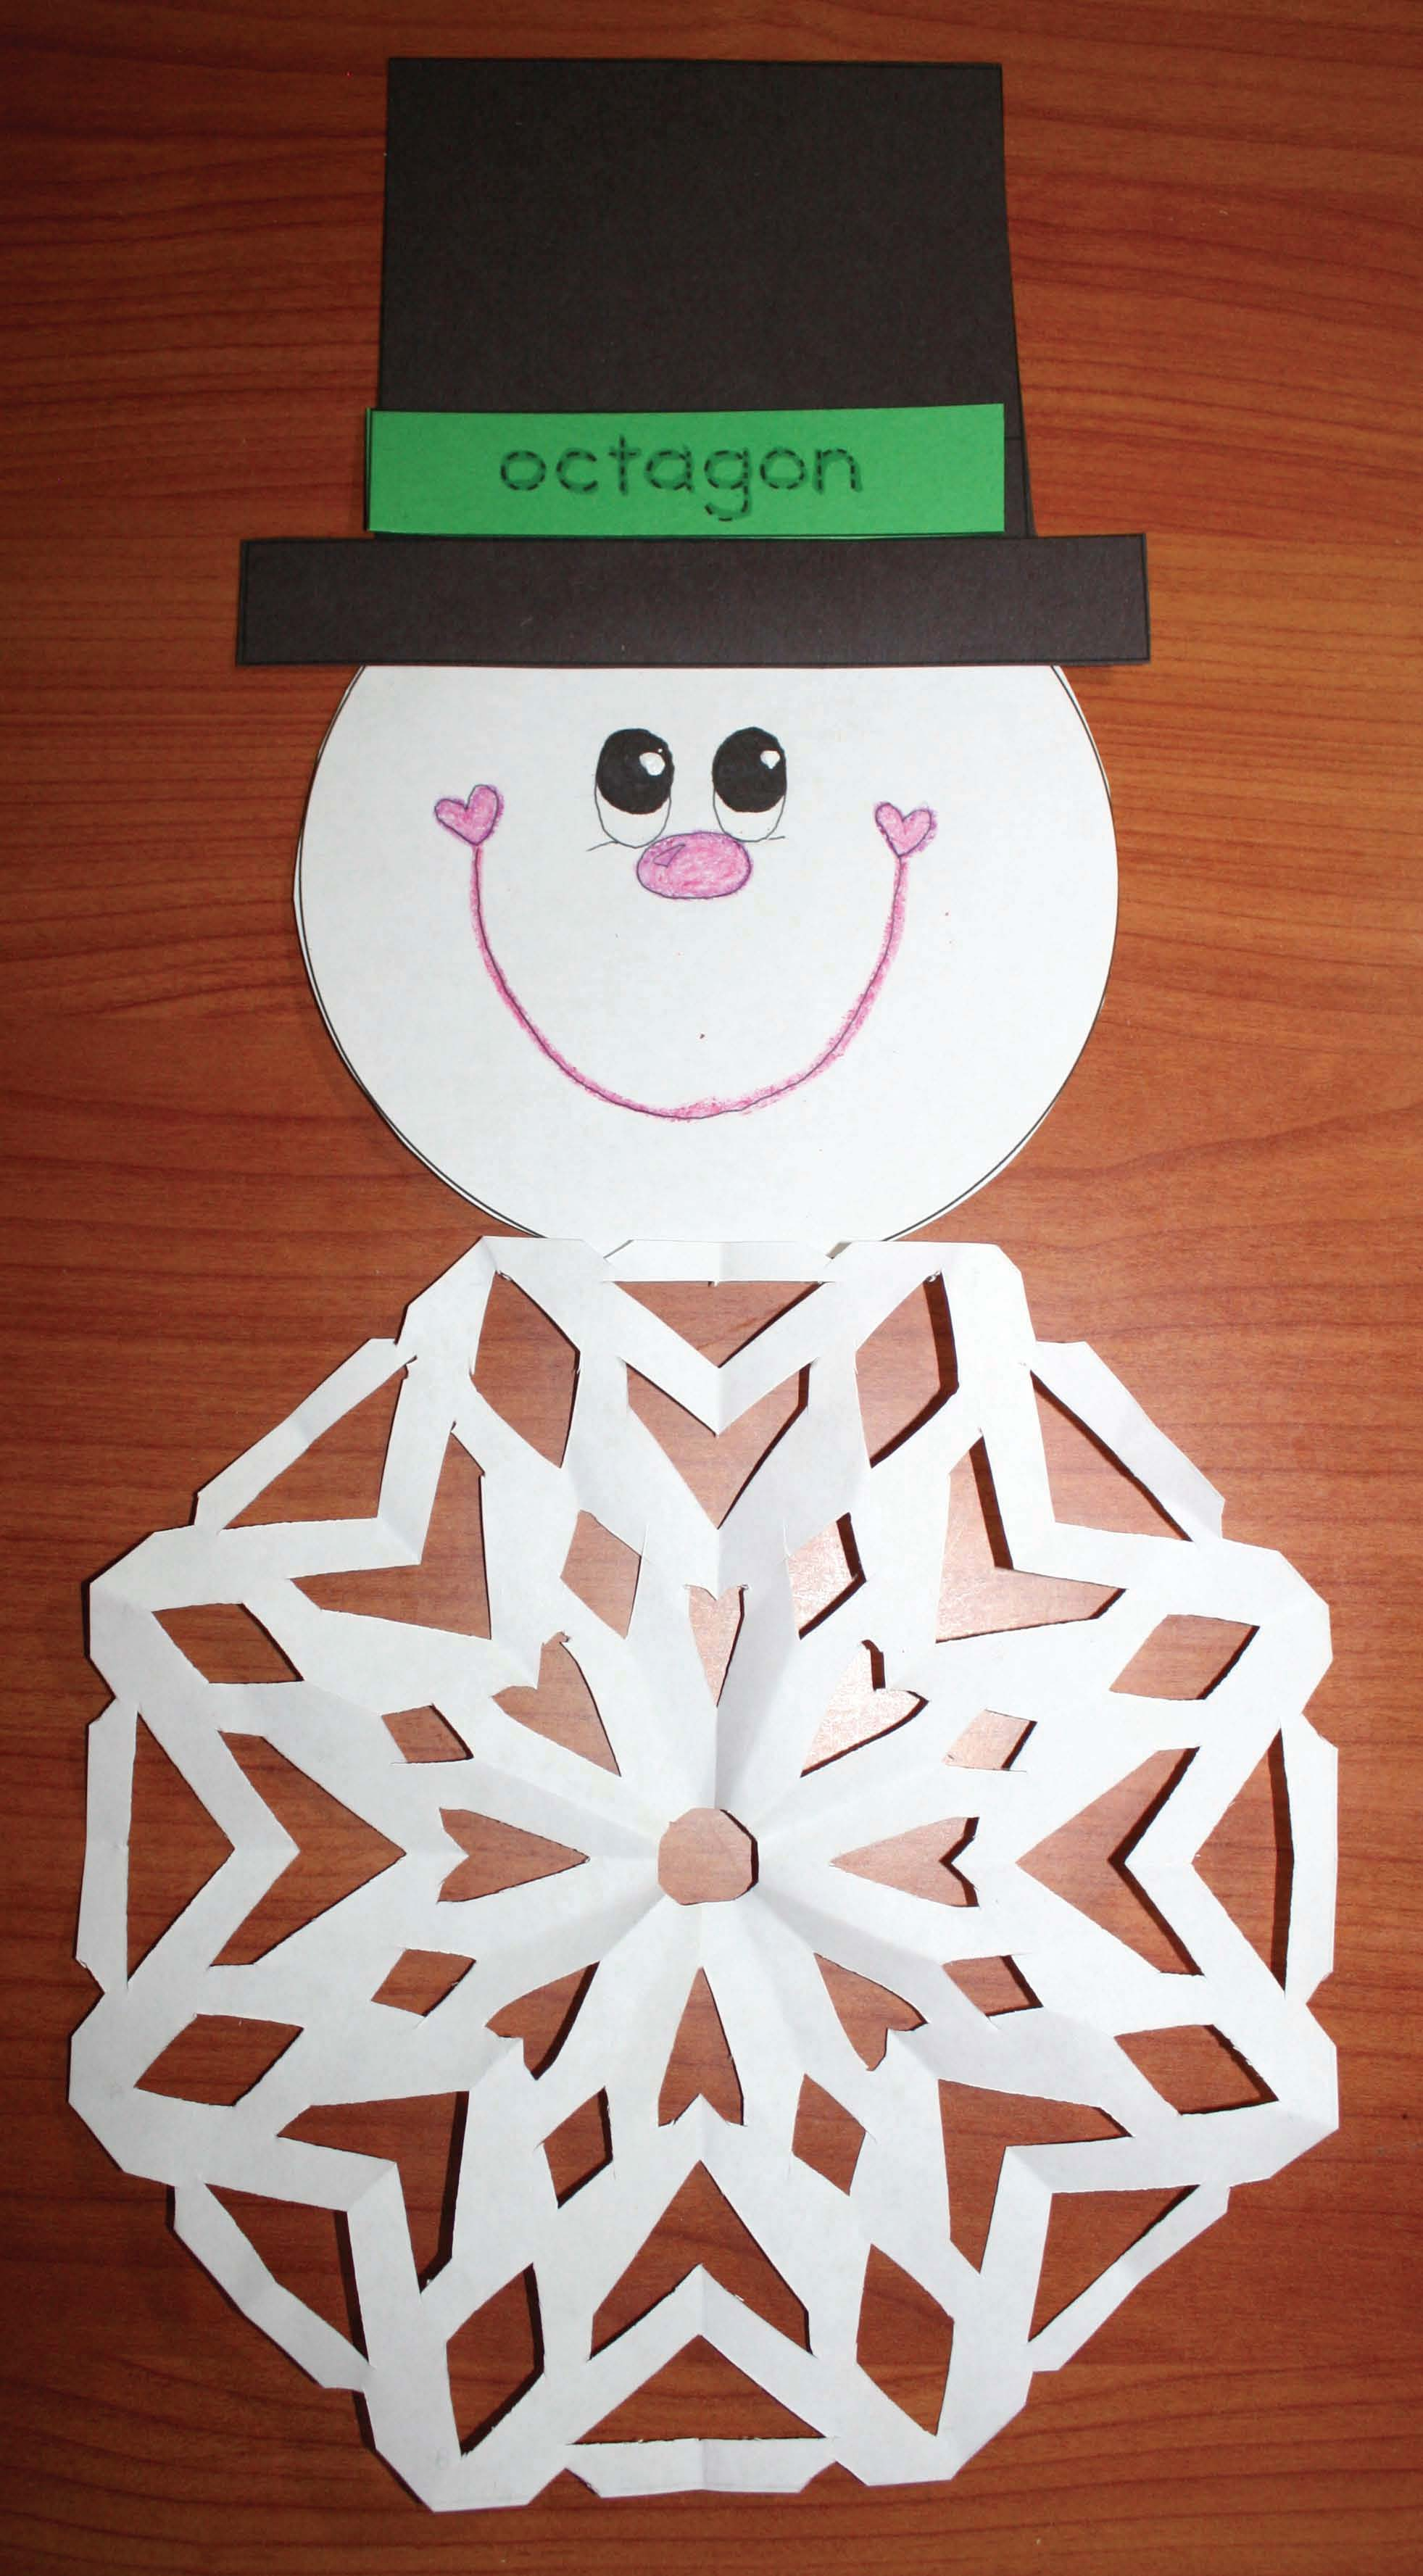 snowflake activities, snowflake crafts, snowman crafts, snowman activities, january bulletin board ideas, directions for cutting snowflakes, snowflake patterns, 2D shape activities, 2D shape crafts